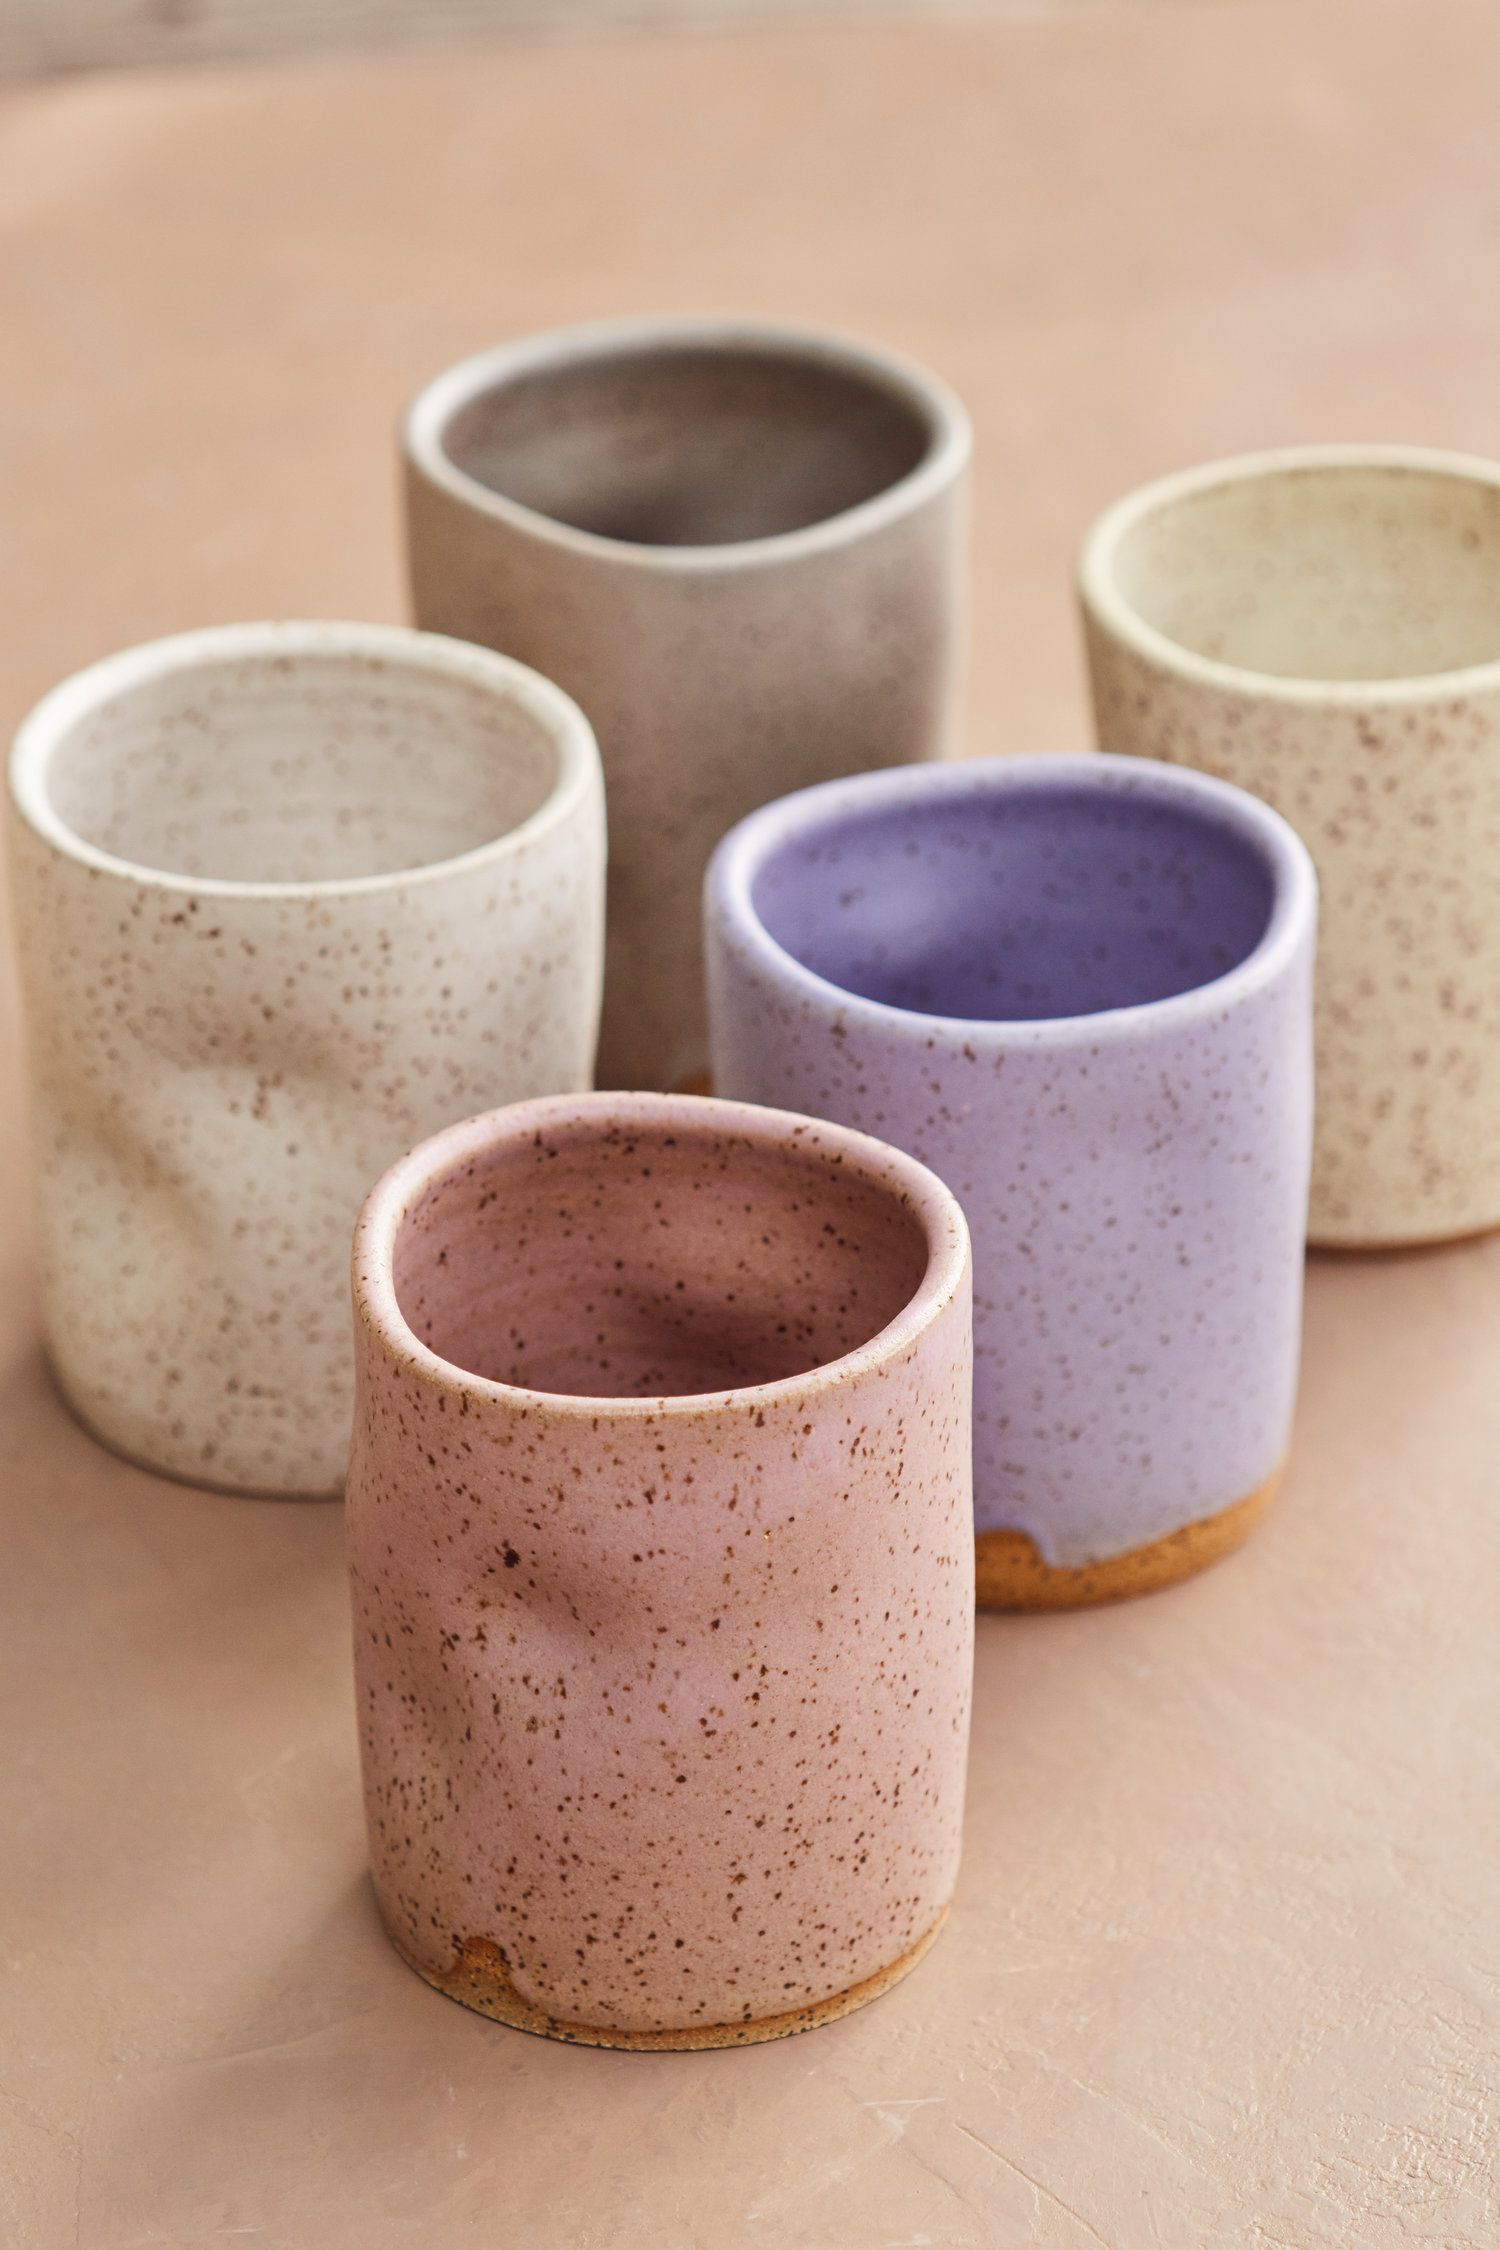 Squishy Cups @earthandelement #ceramics #stoneware #cups #colors #pastels #handmade